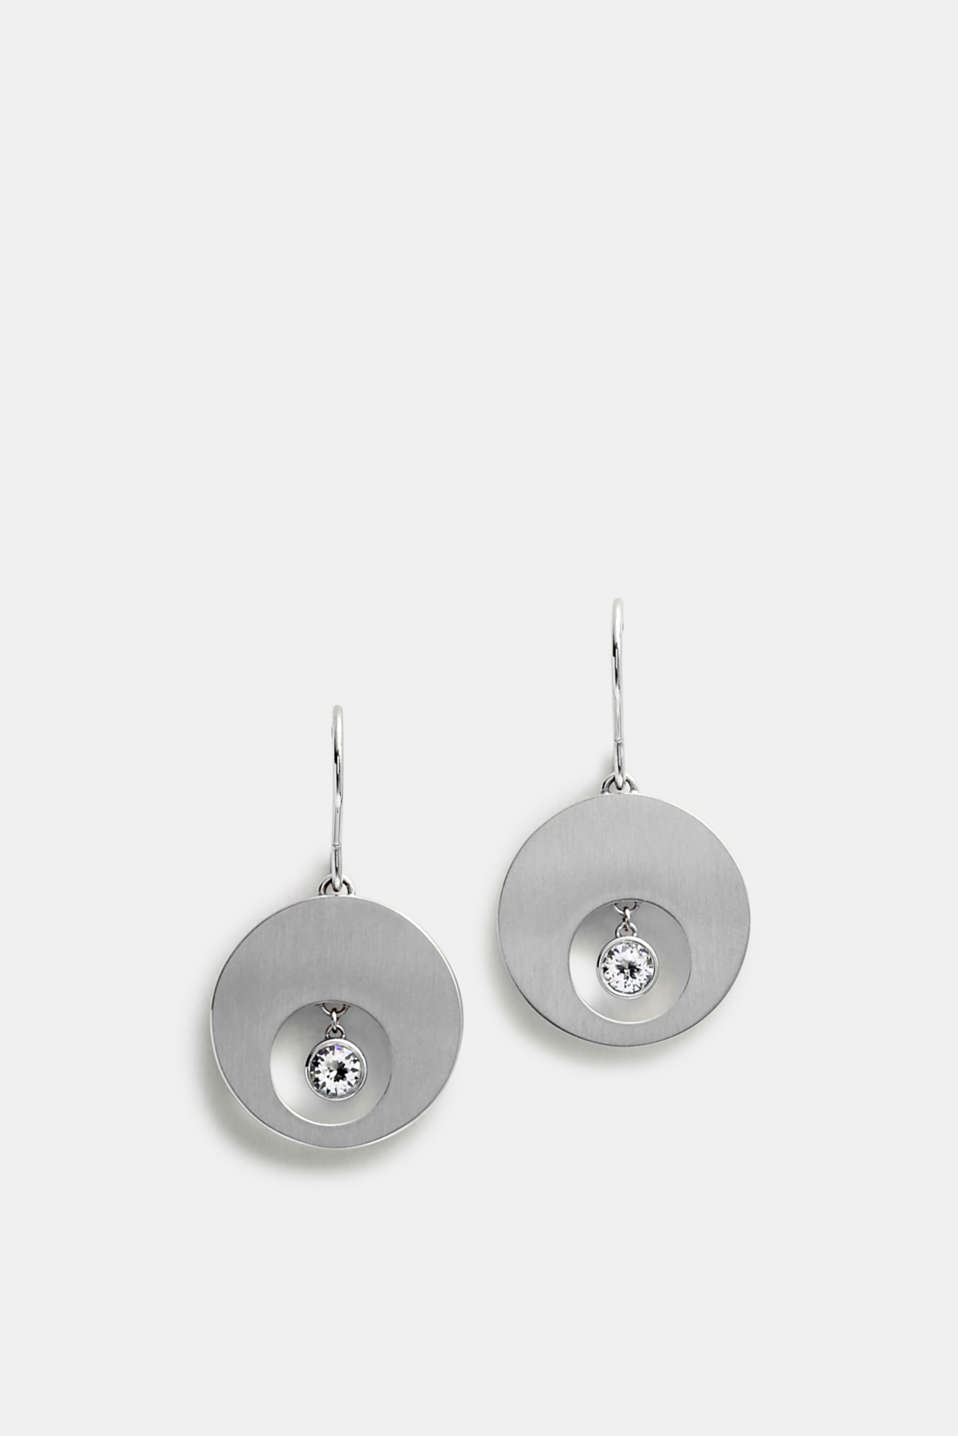 Esprit - Earrings with zirconia trim, made of stainless steel